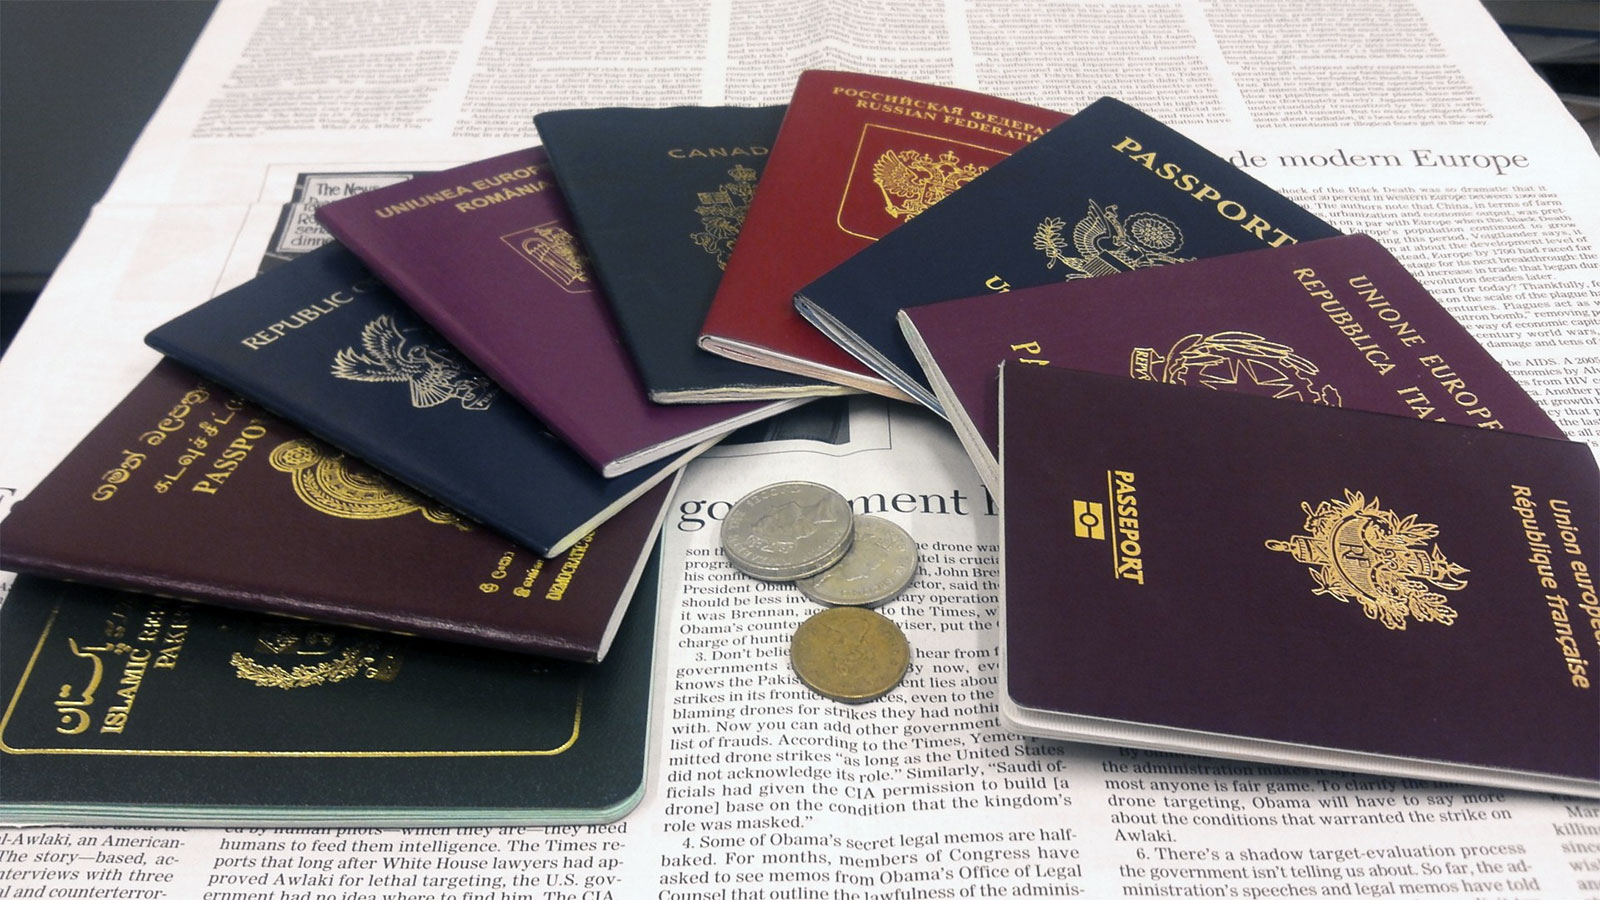 How to apply for the east african tourist visa for kenya rwanda and how to apply for the east african tourist visa for kenya rwanda and uganda thecheapjerseys Images